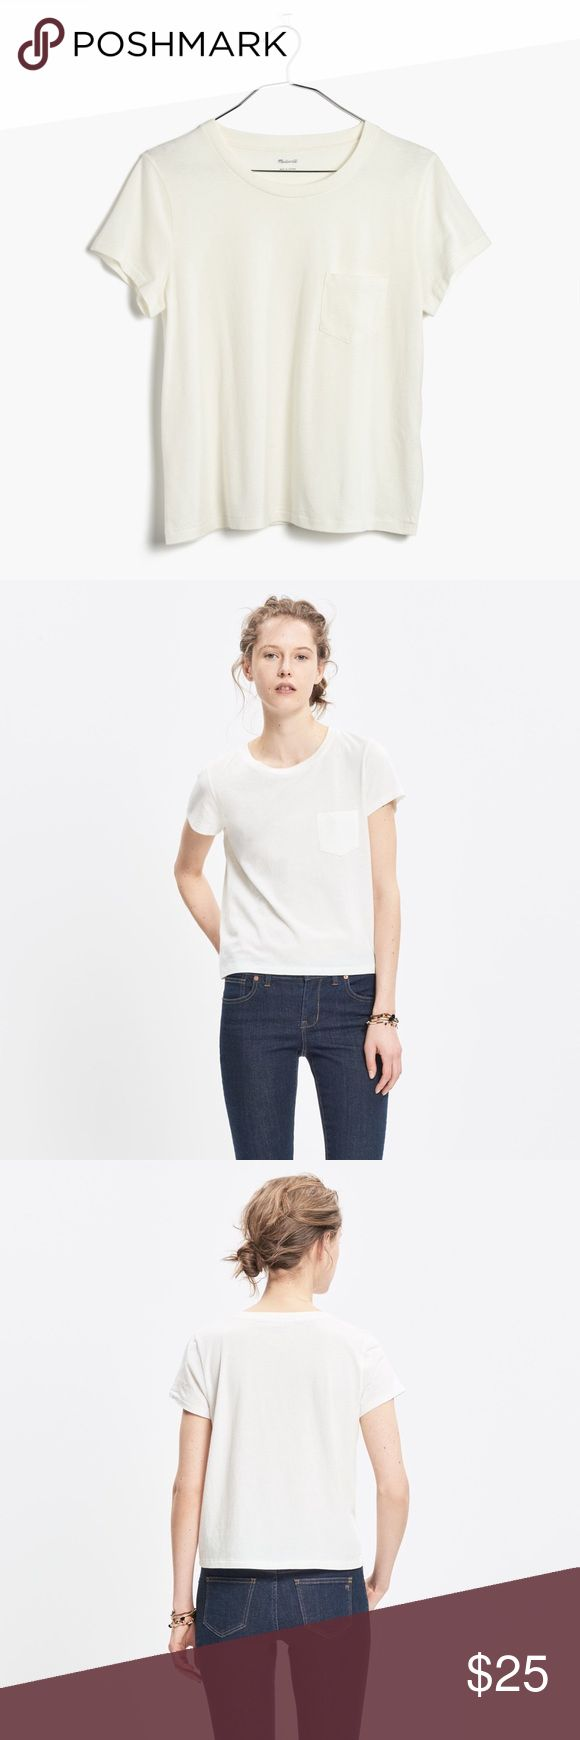 NWT Madewell Radio Tee A boyish take on the fitted tee with a just-right retro feel. Super soft. Pima cotton. Machine wash. Color is off white. Madewell Tops Tees - Short Sleeve